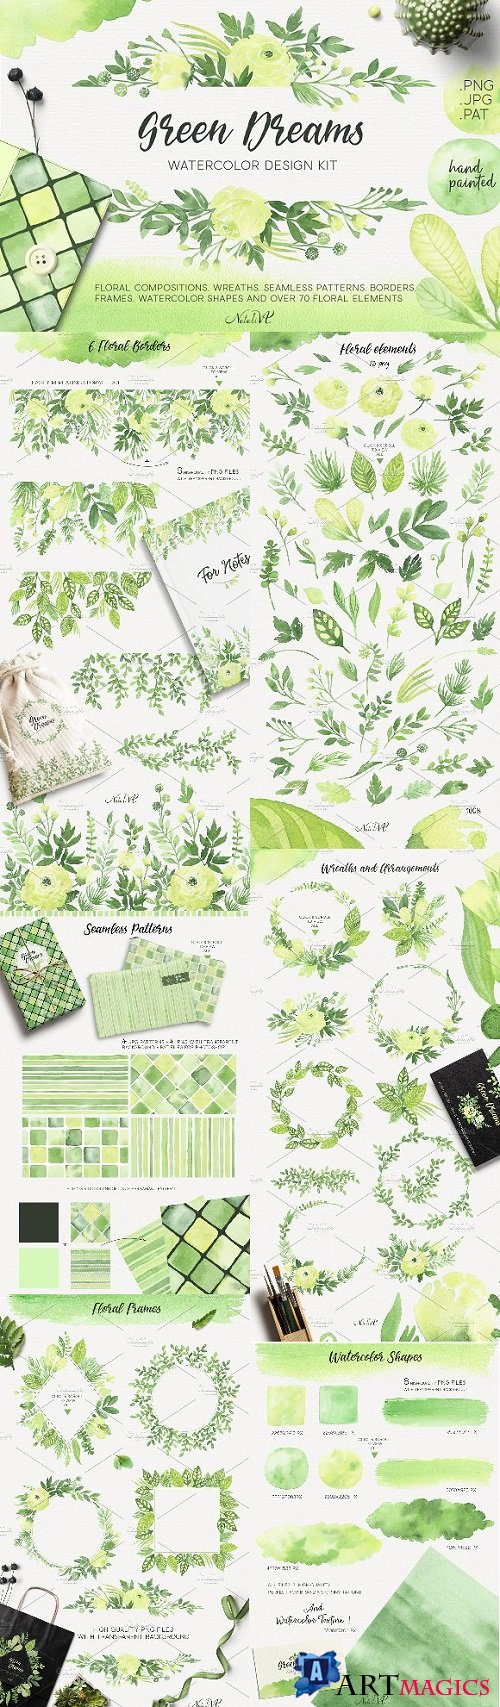 Green Dreams Design kit watercolor 1919082